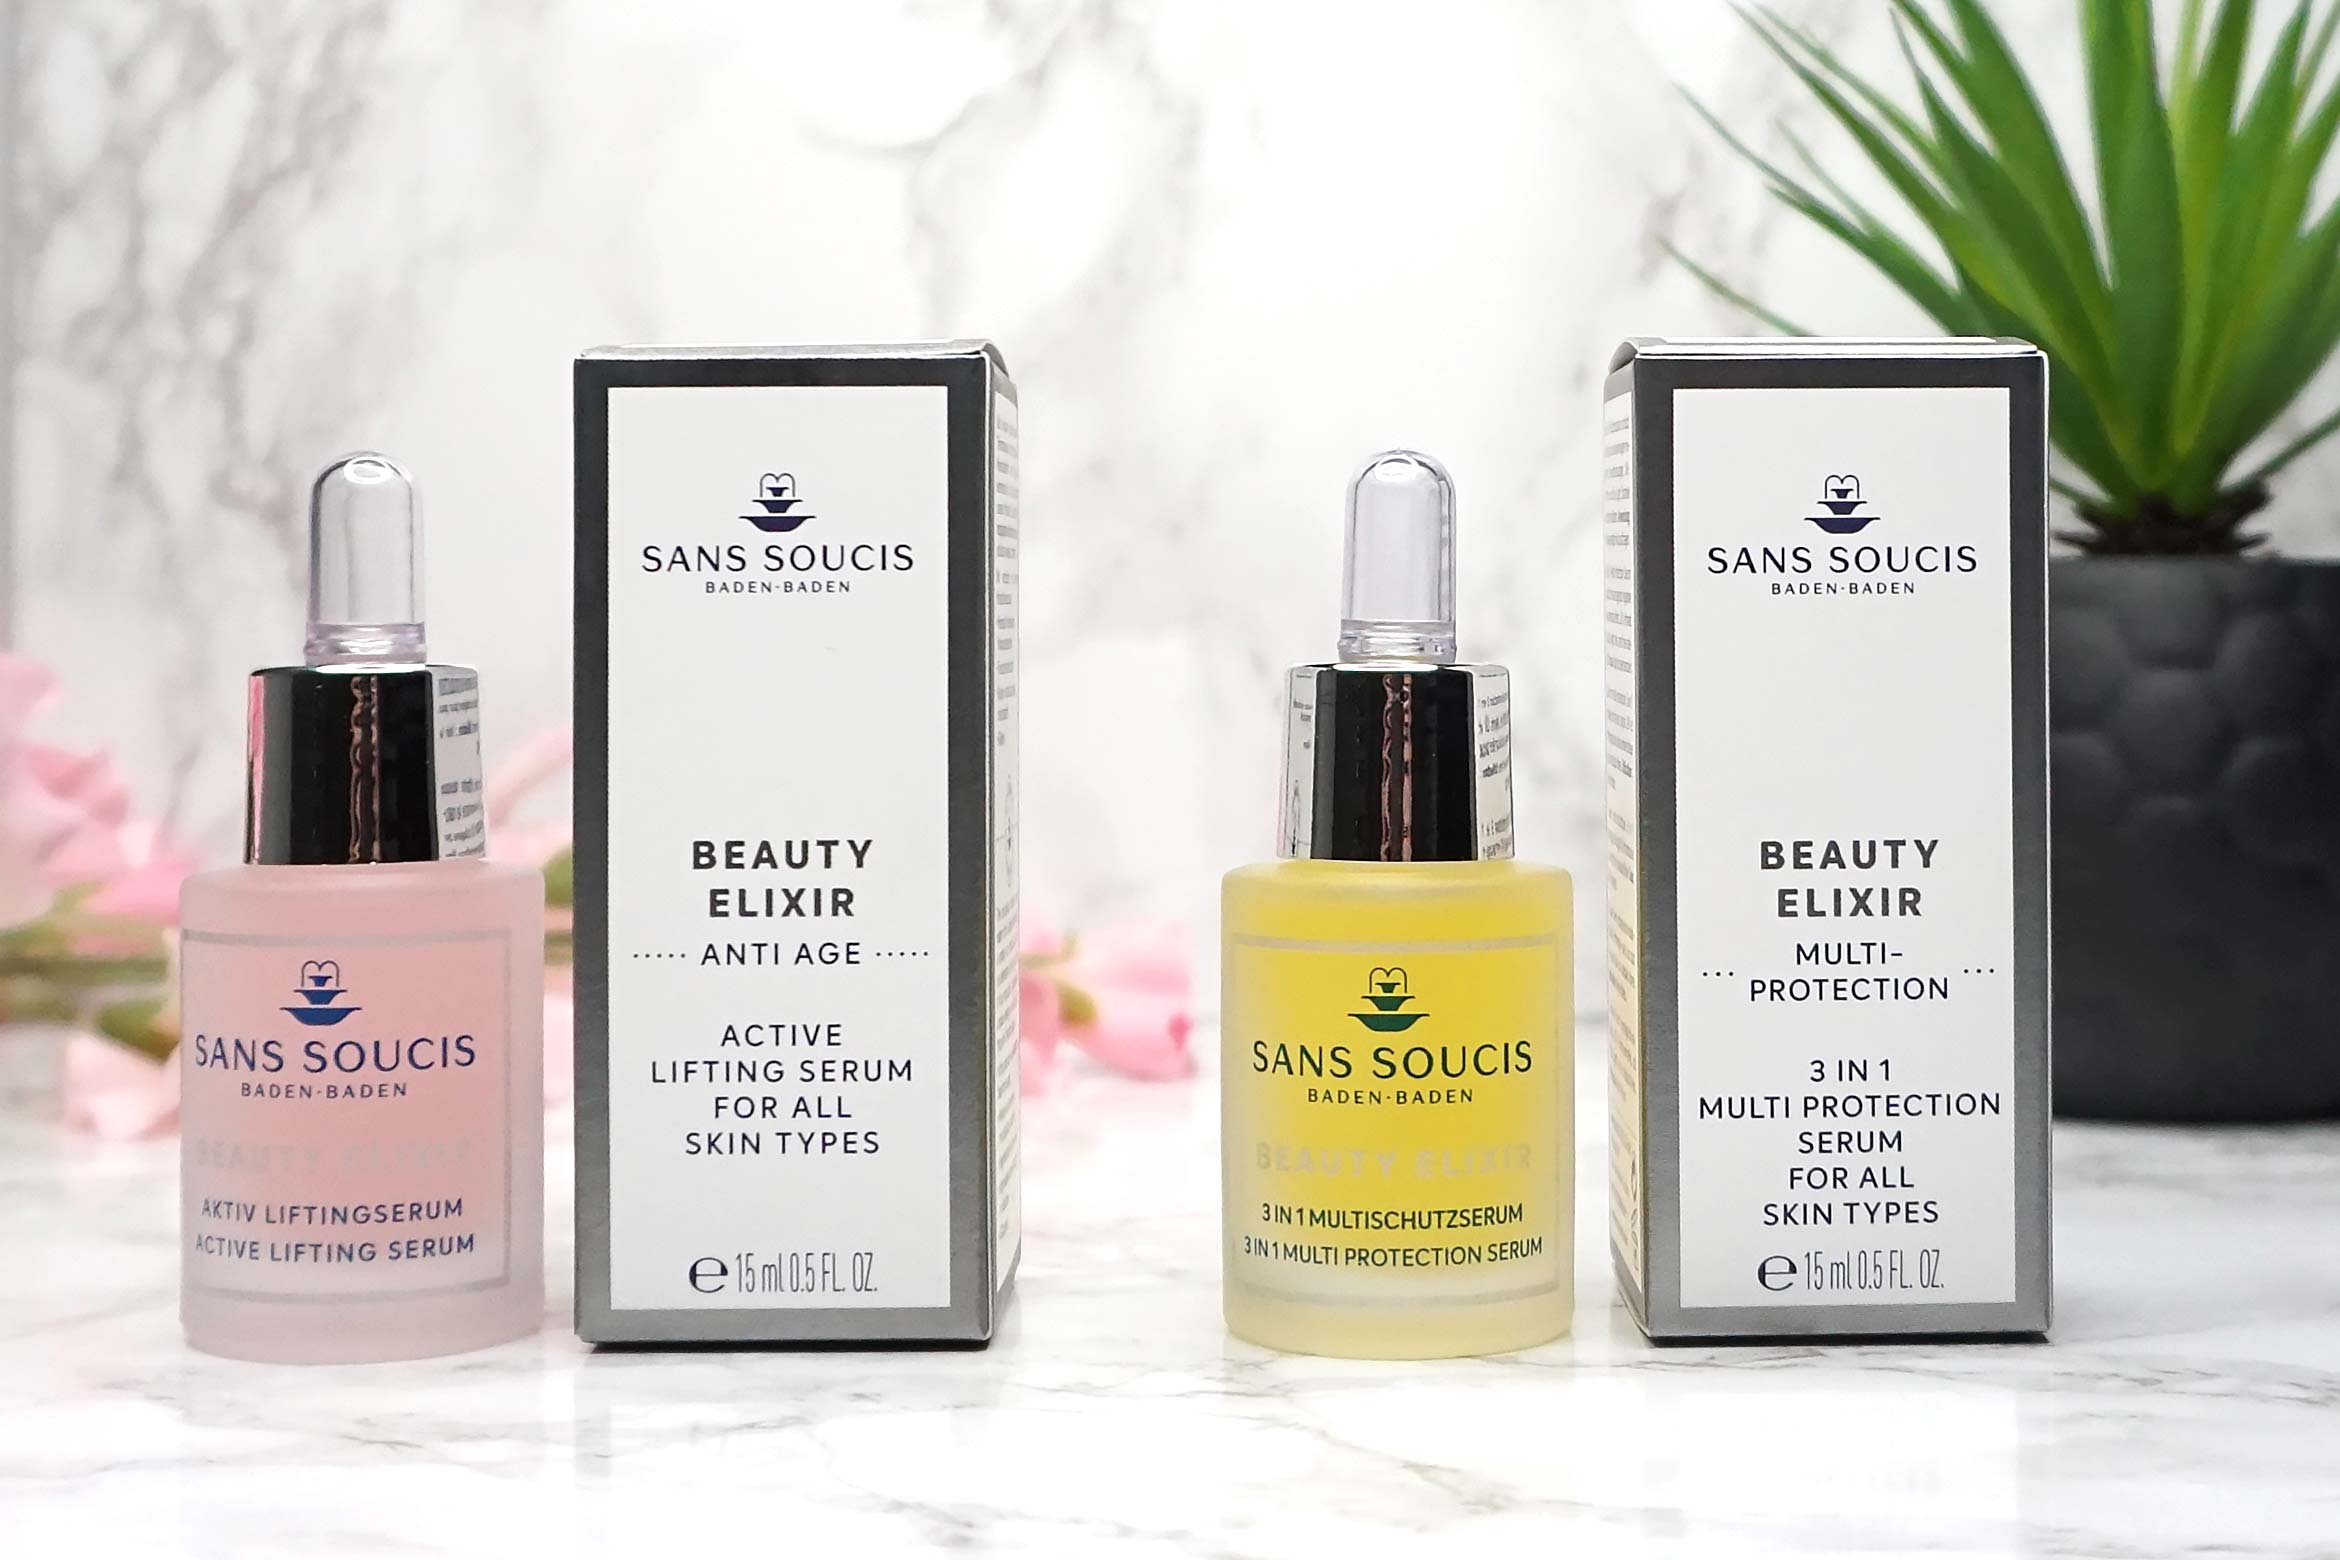 sans-soucis-beauty-elixir-review